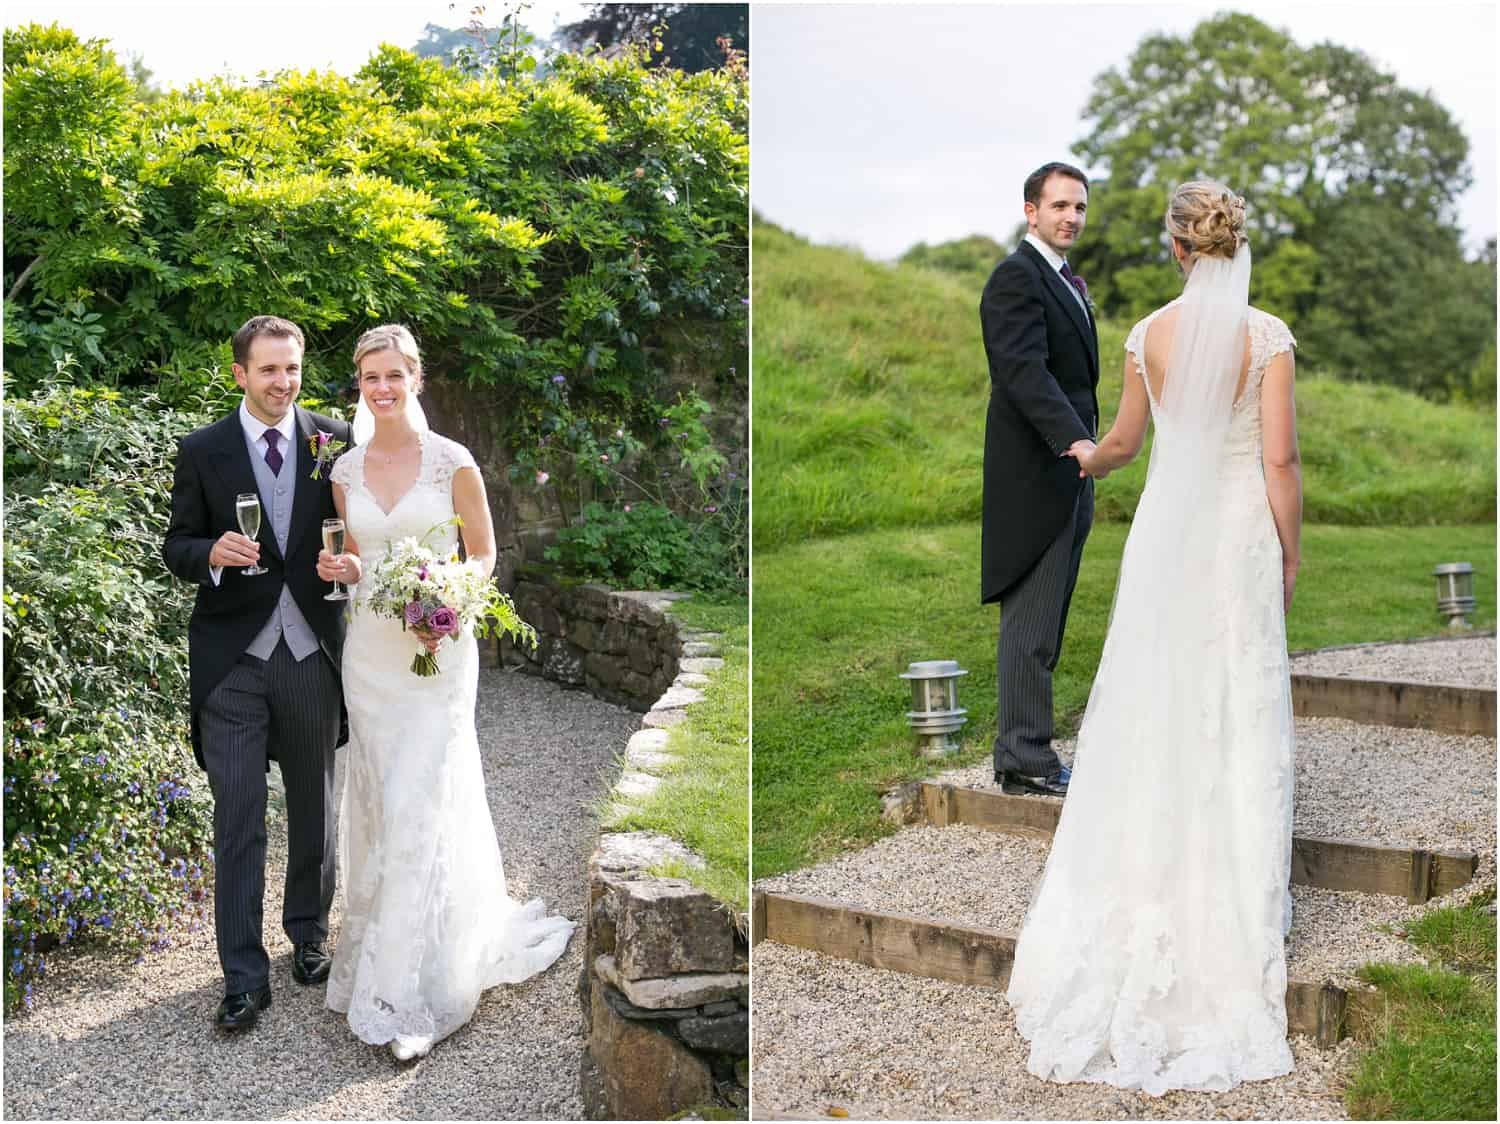 lace wedding gown, Devon wedding, barn wedding